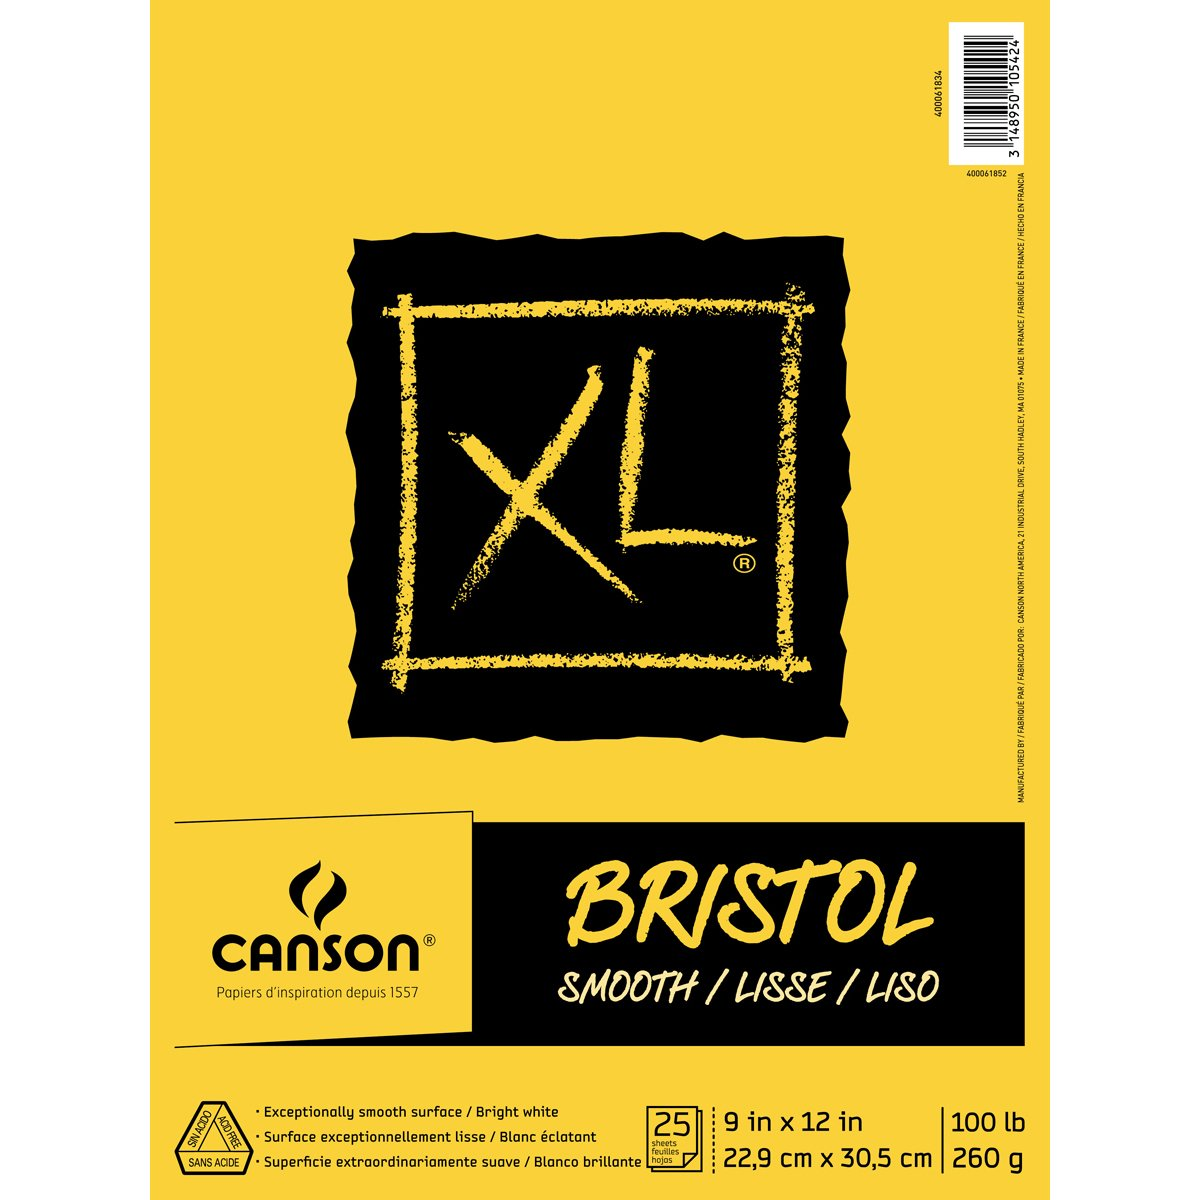 Canson XL Series Bristol Pad, Heavyweight Paper for Ink, Marker or Pencil, Smooth Finish, Fold Over, 100 Pound, 9 x 12 Inch, Bright White, 25 Sheets by Canson